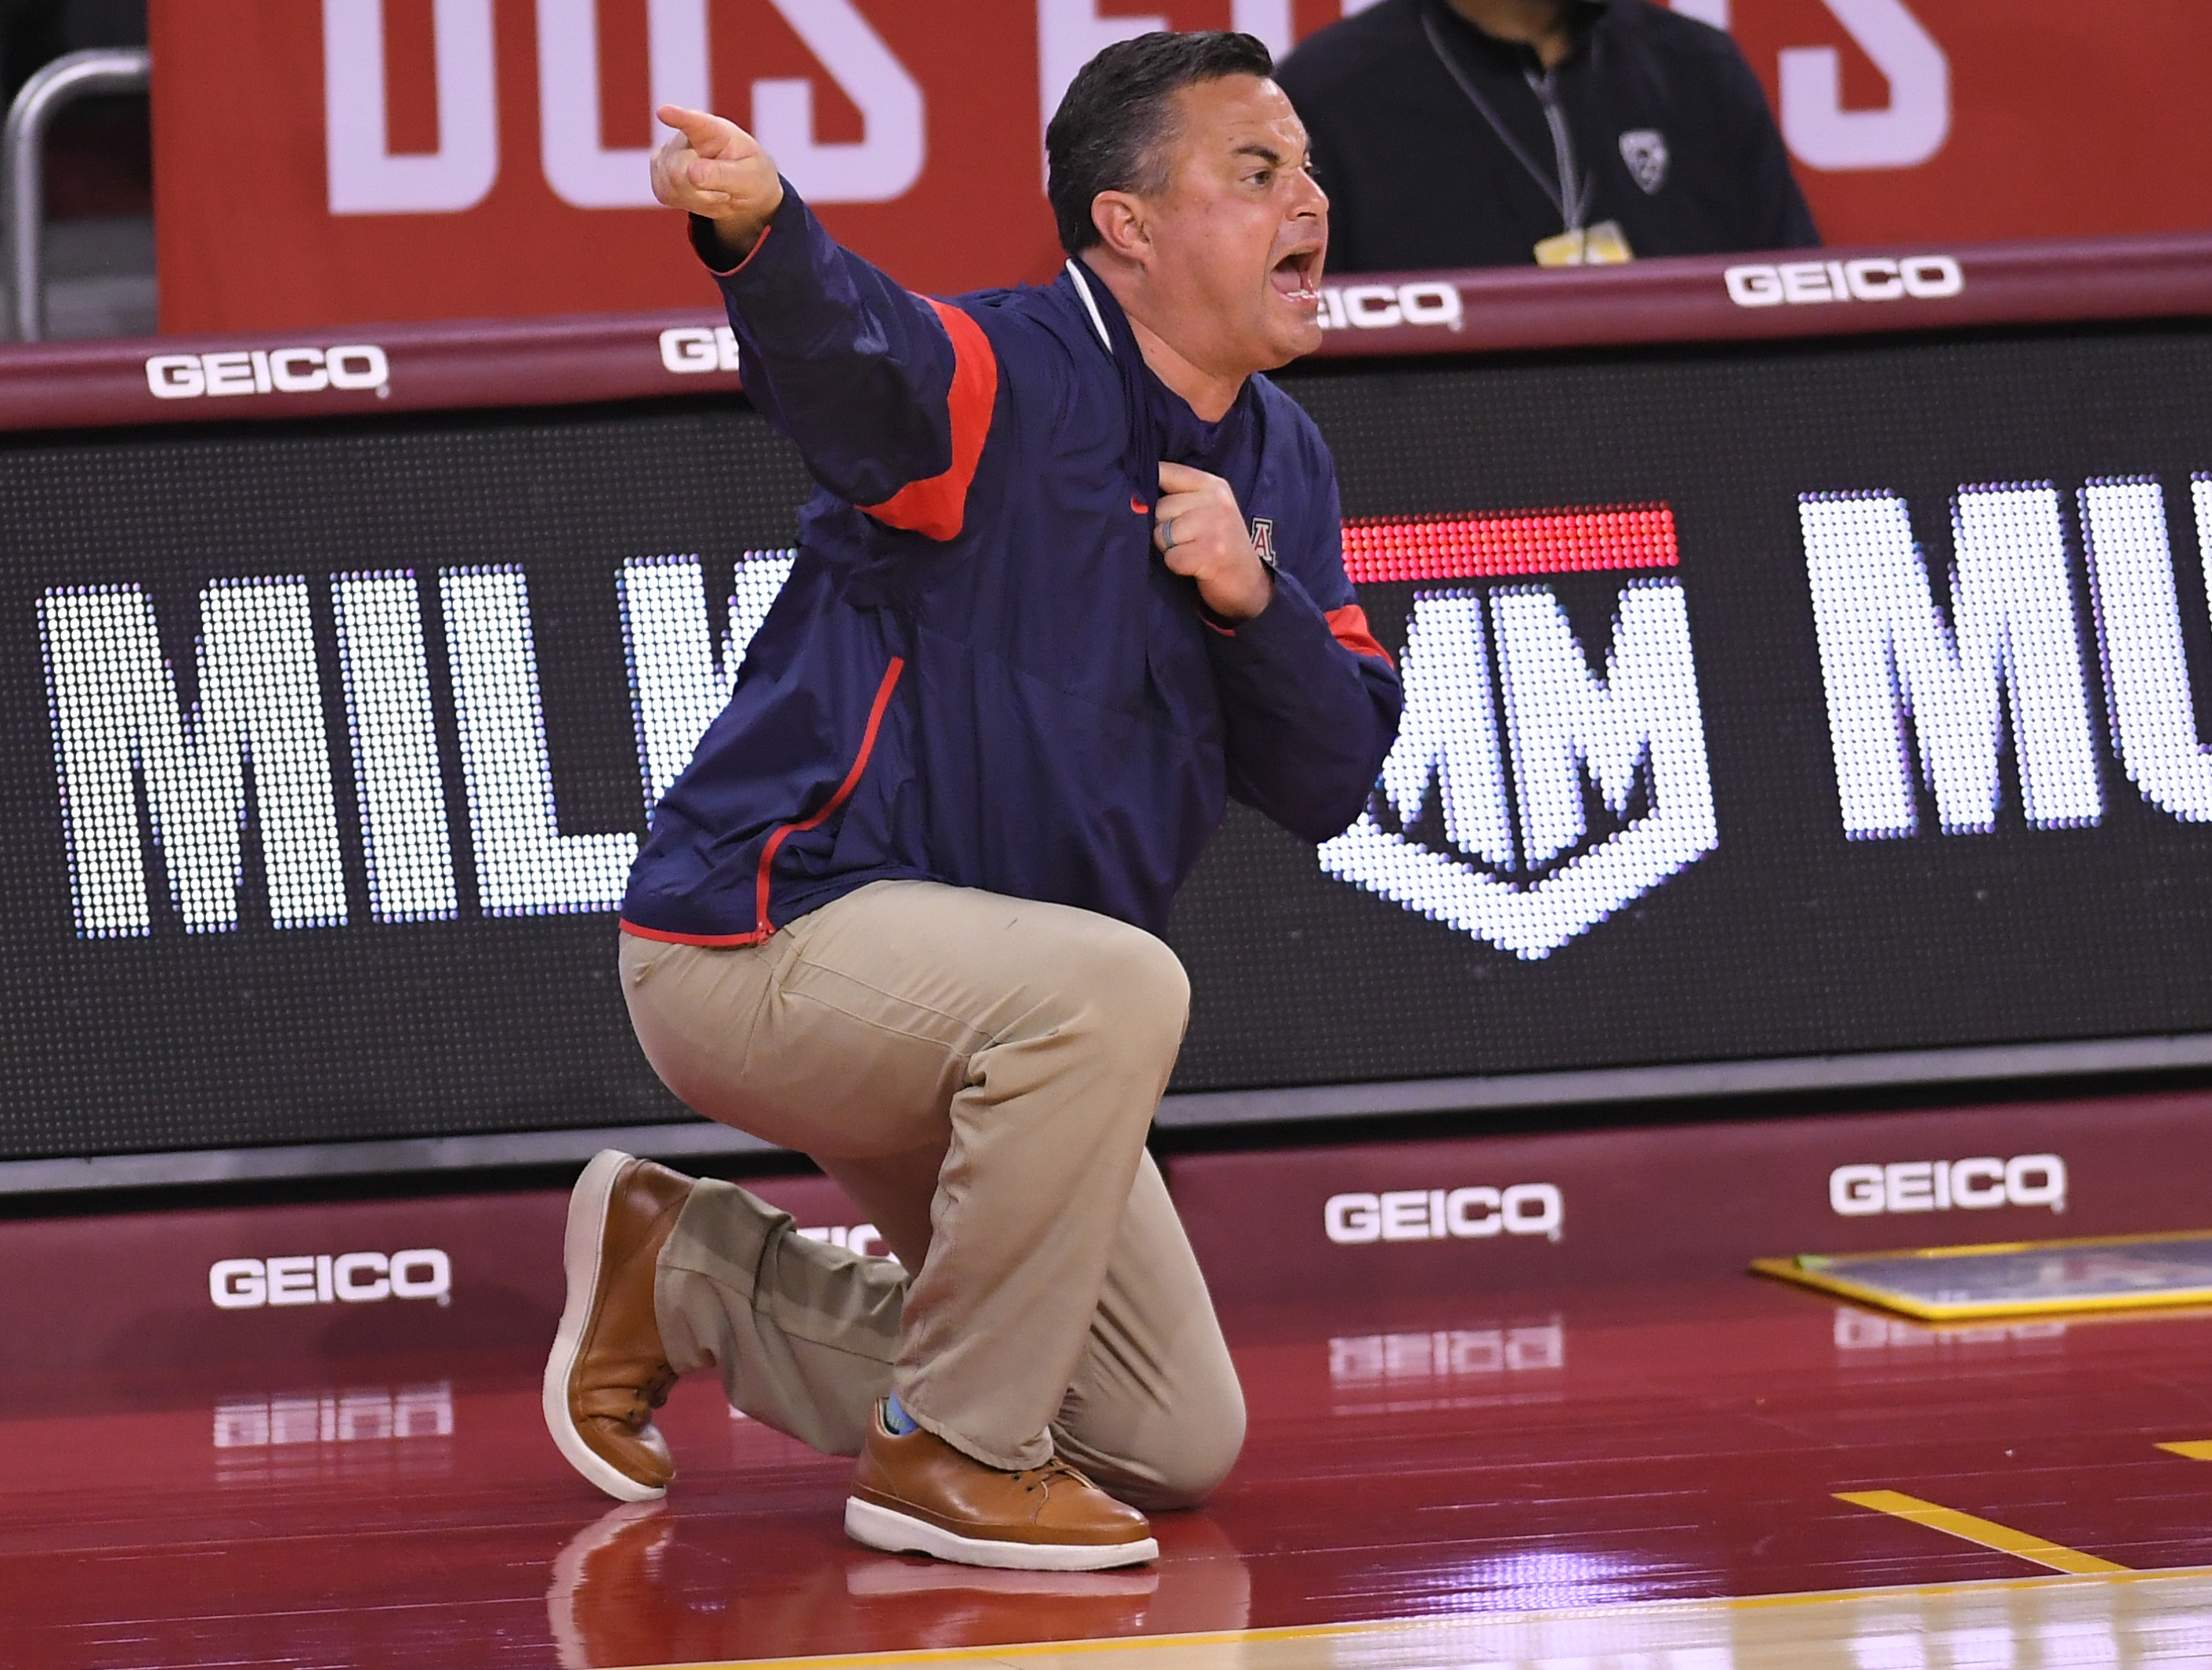 Head coach Sean Miller of the Arizona Wildcats on the sideline while playing the USC Trojans at Galen Center on February 20, 2021 in Los Angeles, California.